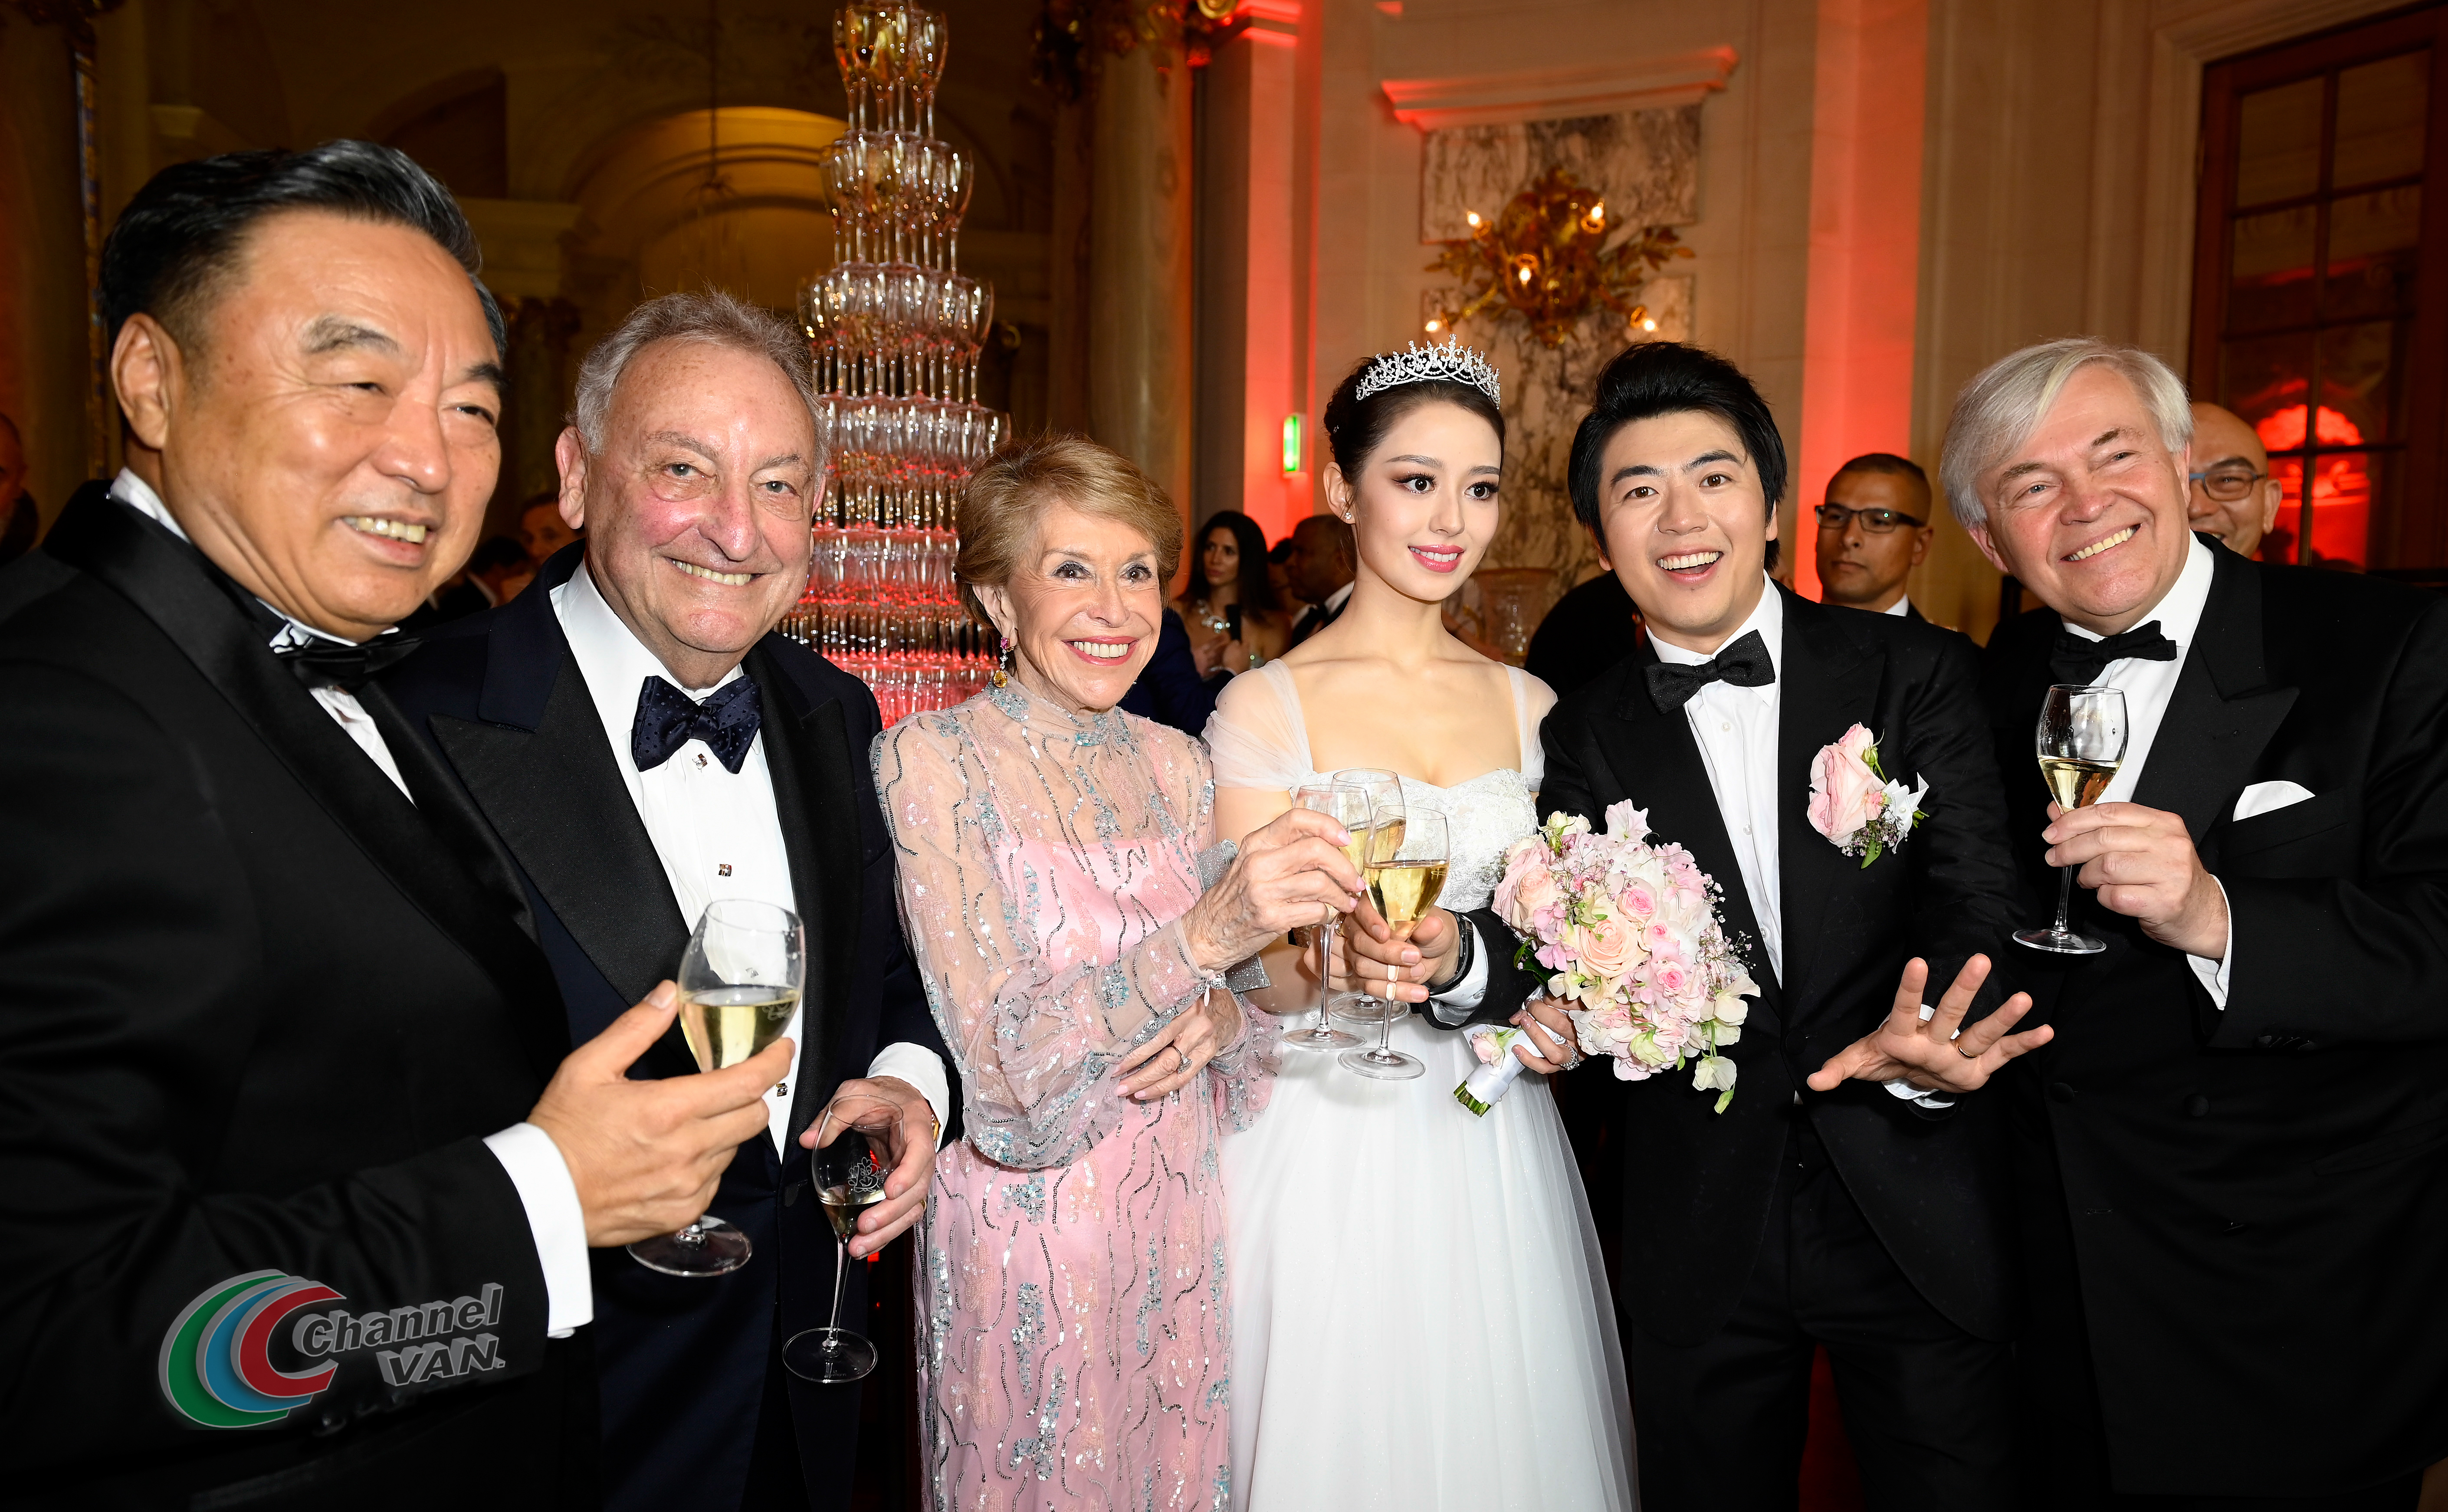 PARIS, FRANCE - JUNE 02: (L-R) Ma Weihua, Sandy Weill, Joan Weill, Gina Alice, Lang Lang and a guest pose for a picture during Pianists Lang Lang & Gina Alice Cocktail Wedding at Hotel Shangri-La on June 02, 2019 in Paris, France. (Photo by Kristy Sparow/Getty Images for Moet Hennessy)